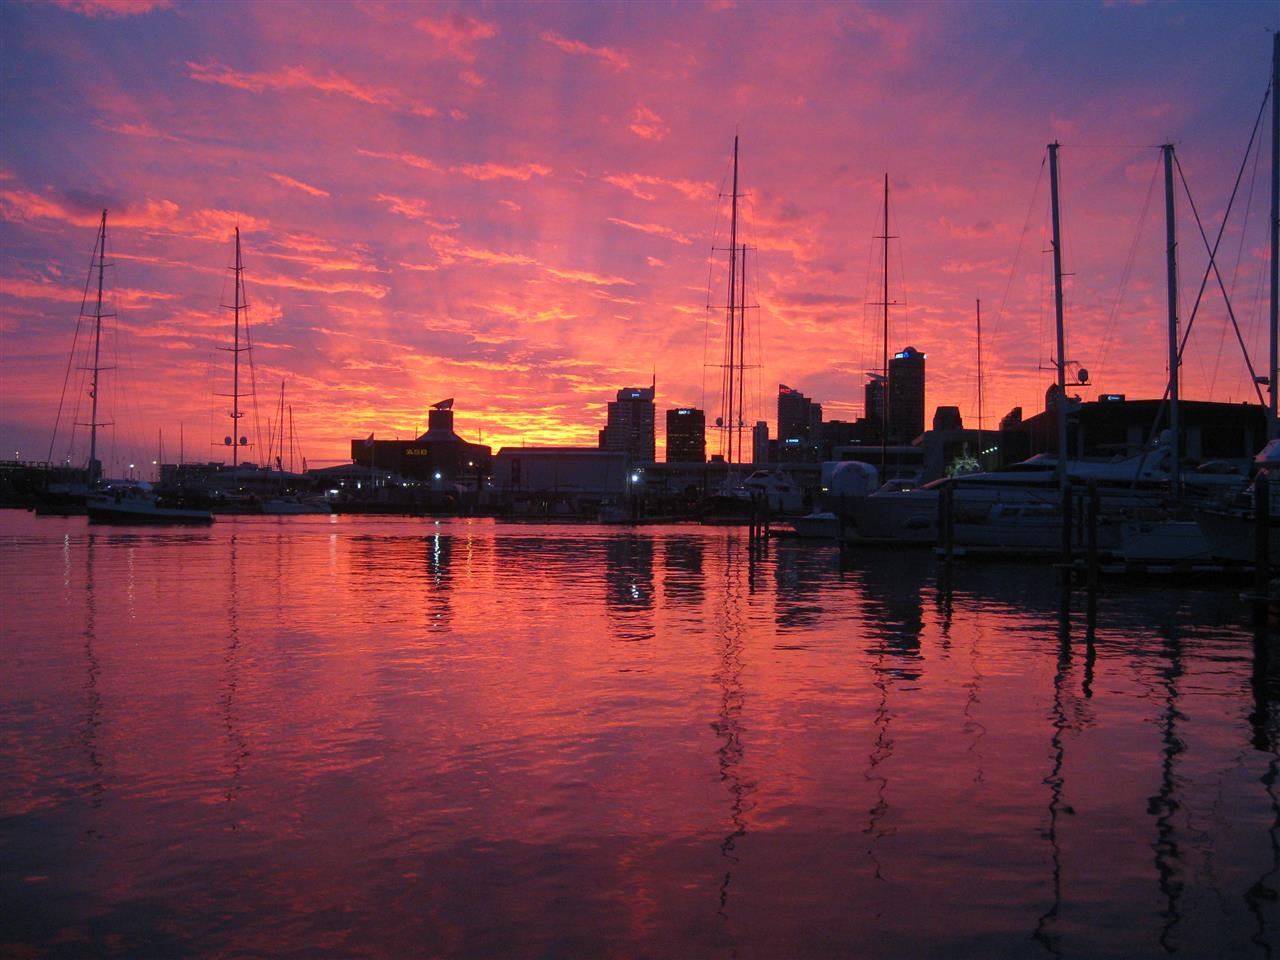 Sunset  Auckland, New Zealand #LeadingRElocal